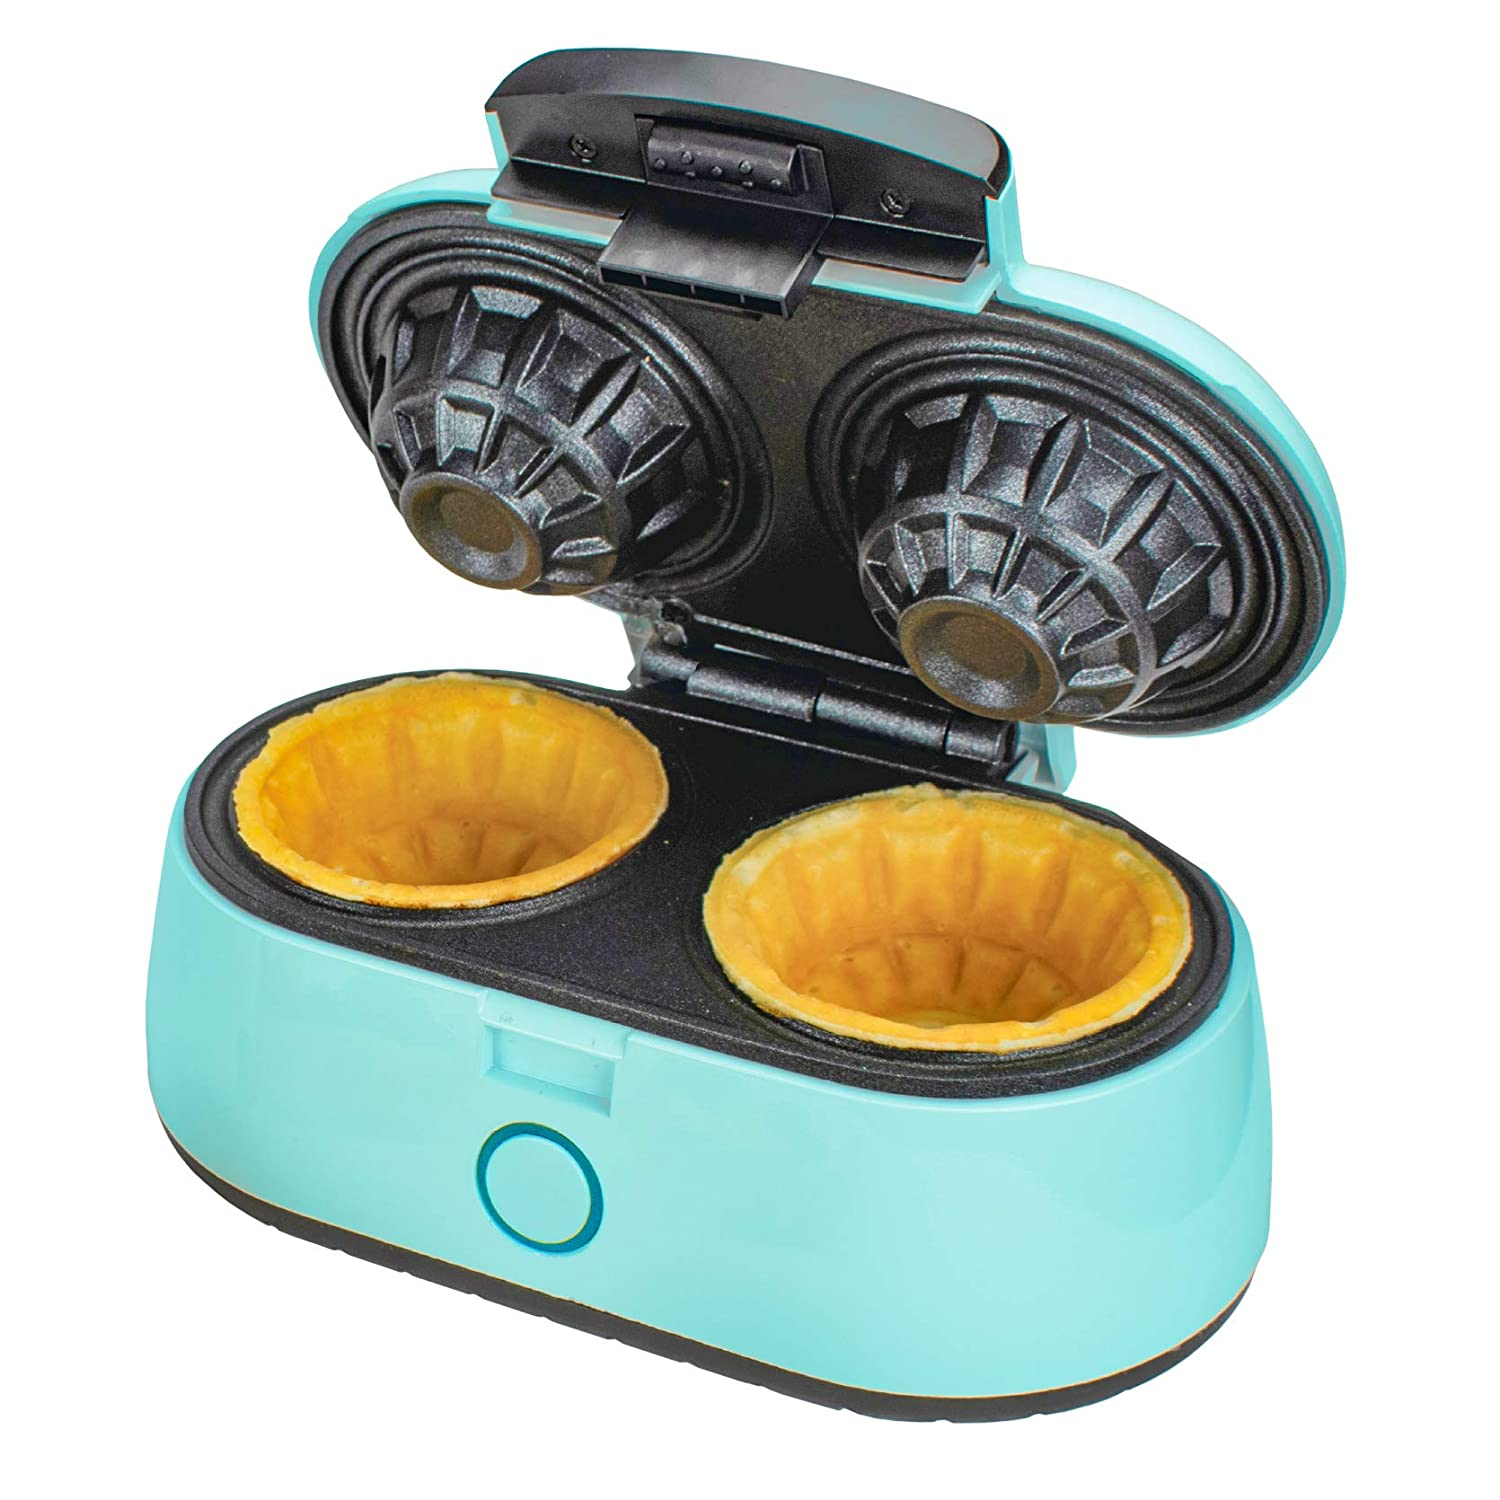 Brentwood TS-1402BL 1000w Double Waffle Bowl Maker, Blue